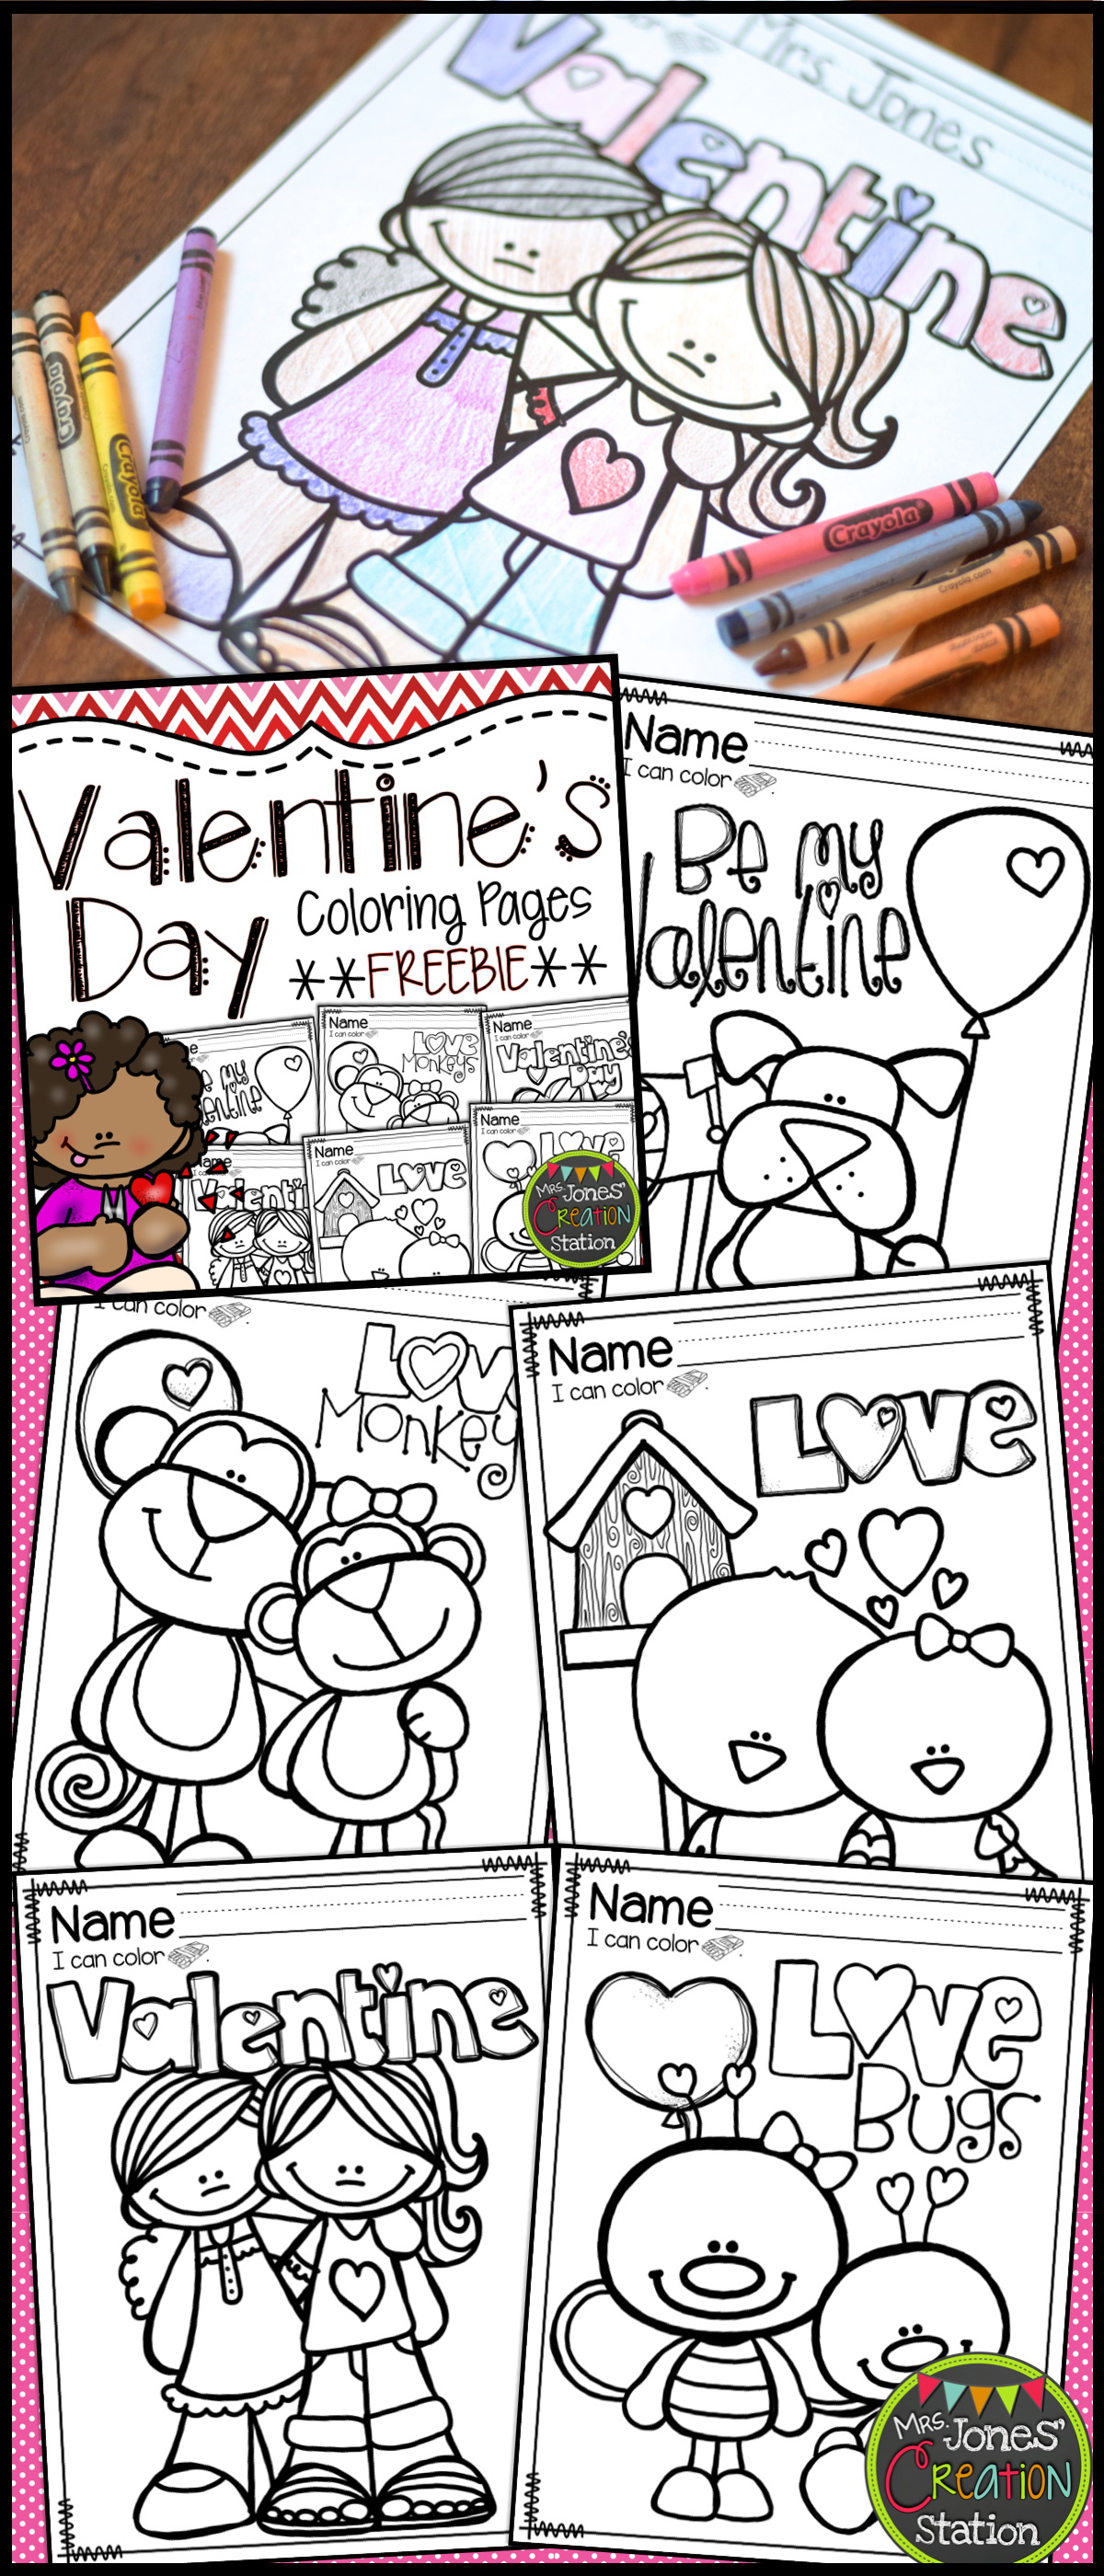 Valentines Day Coloring Pages FREEBIE  Mrs Jones Creation